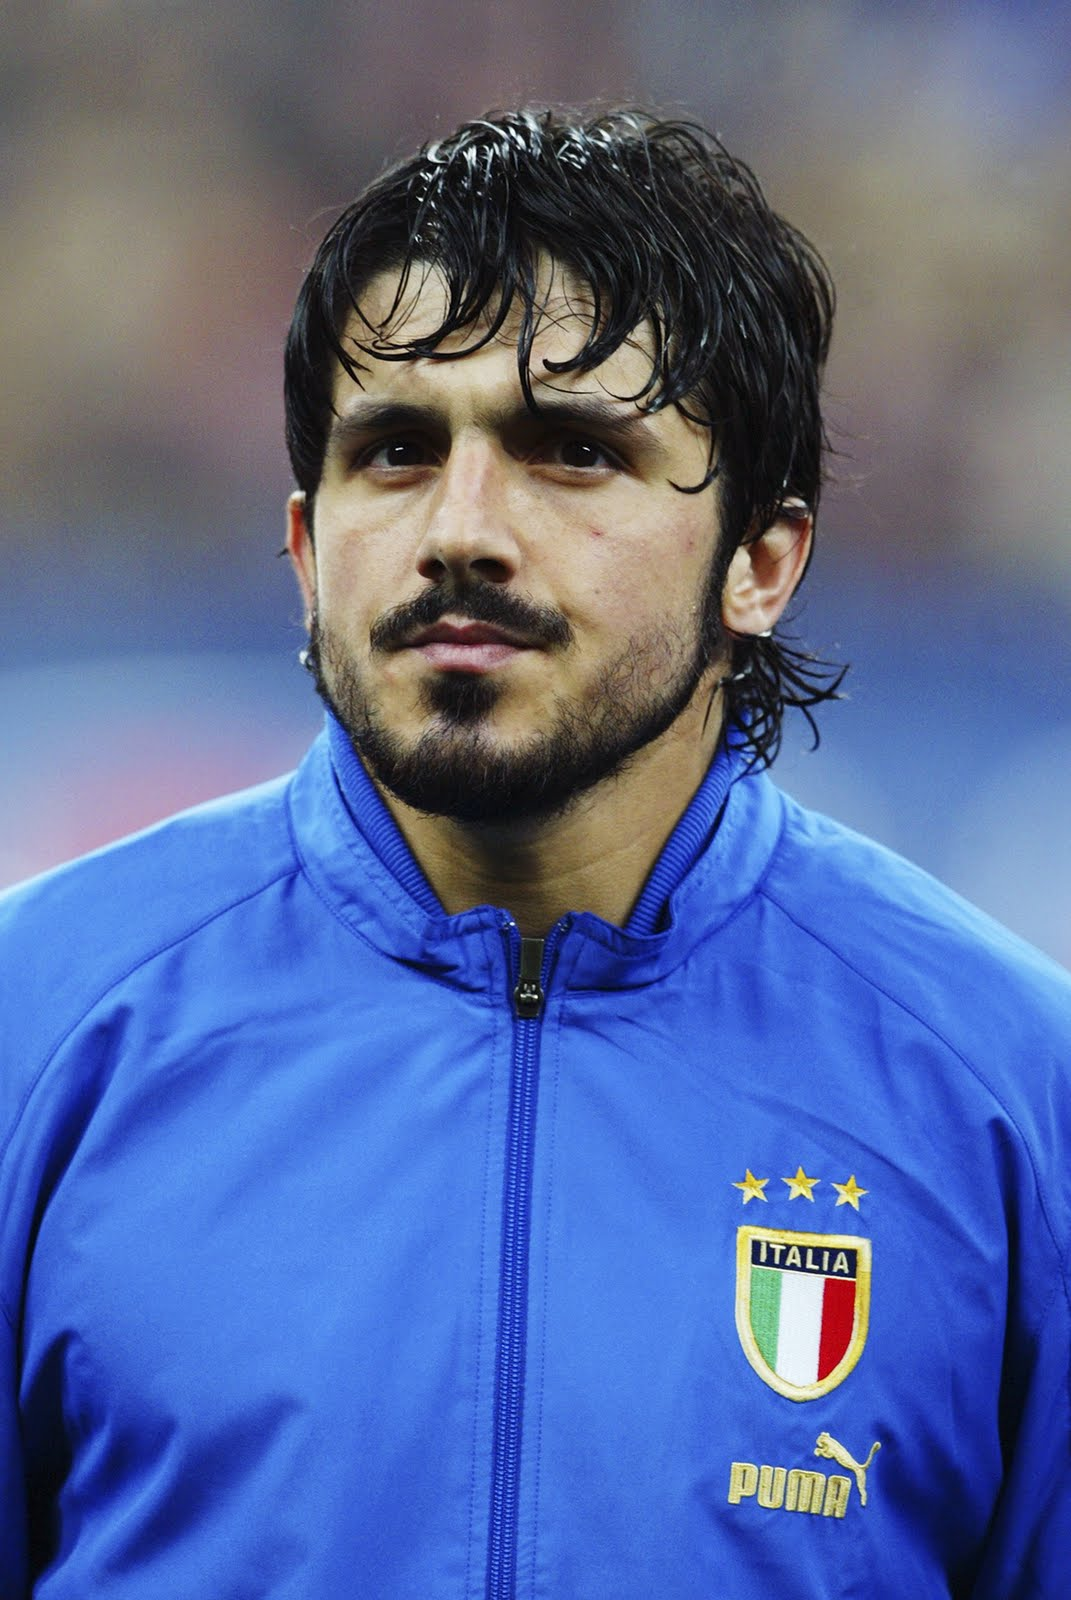 gattuso - photo #13